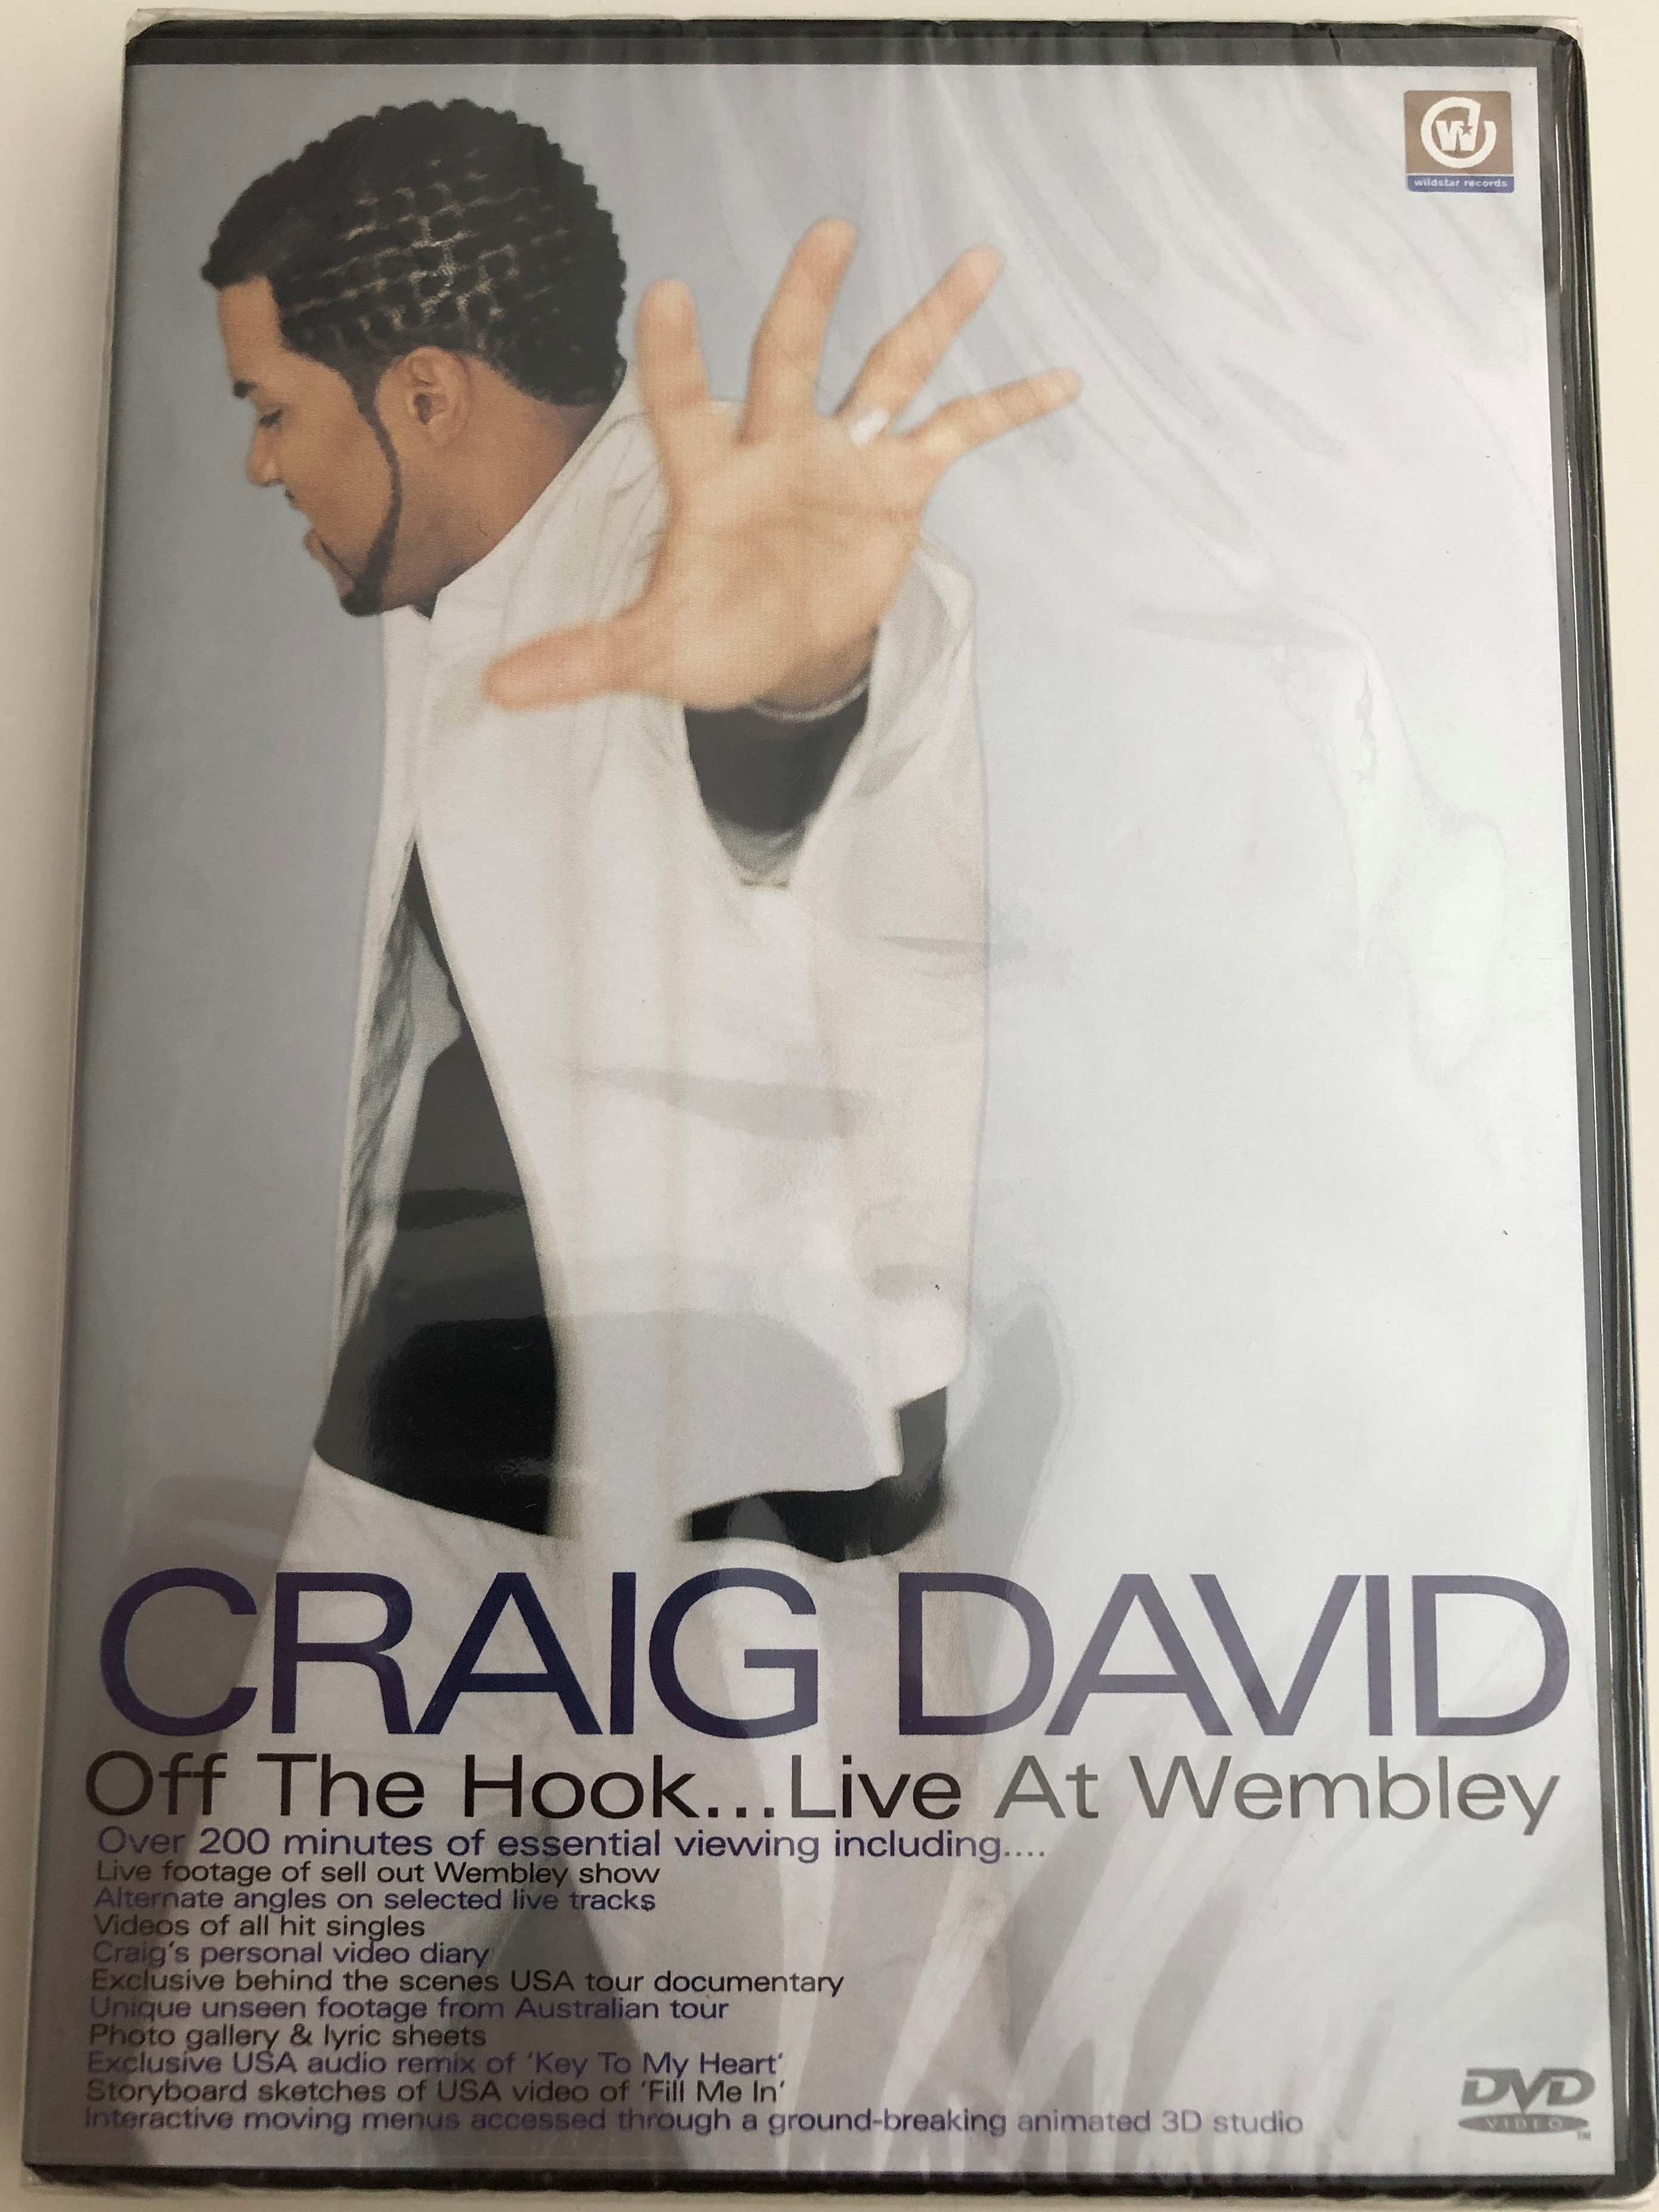 -off-the-hook-craig-david-...-live-at-wembley-dvd-2001-over-200-minutes-of-essential-viewing-1-.jpg